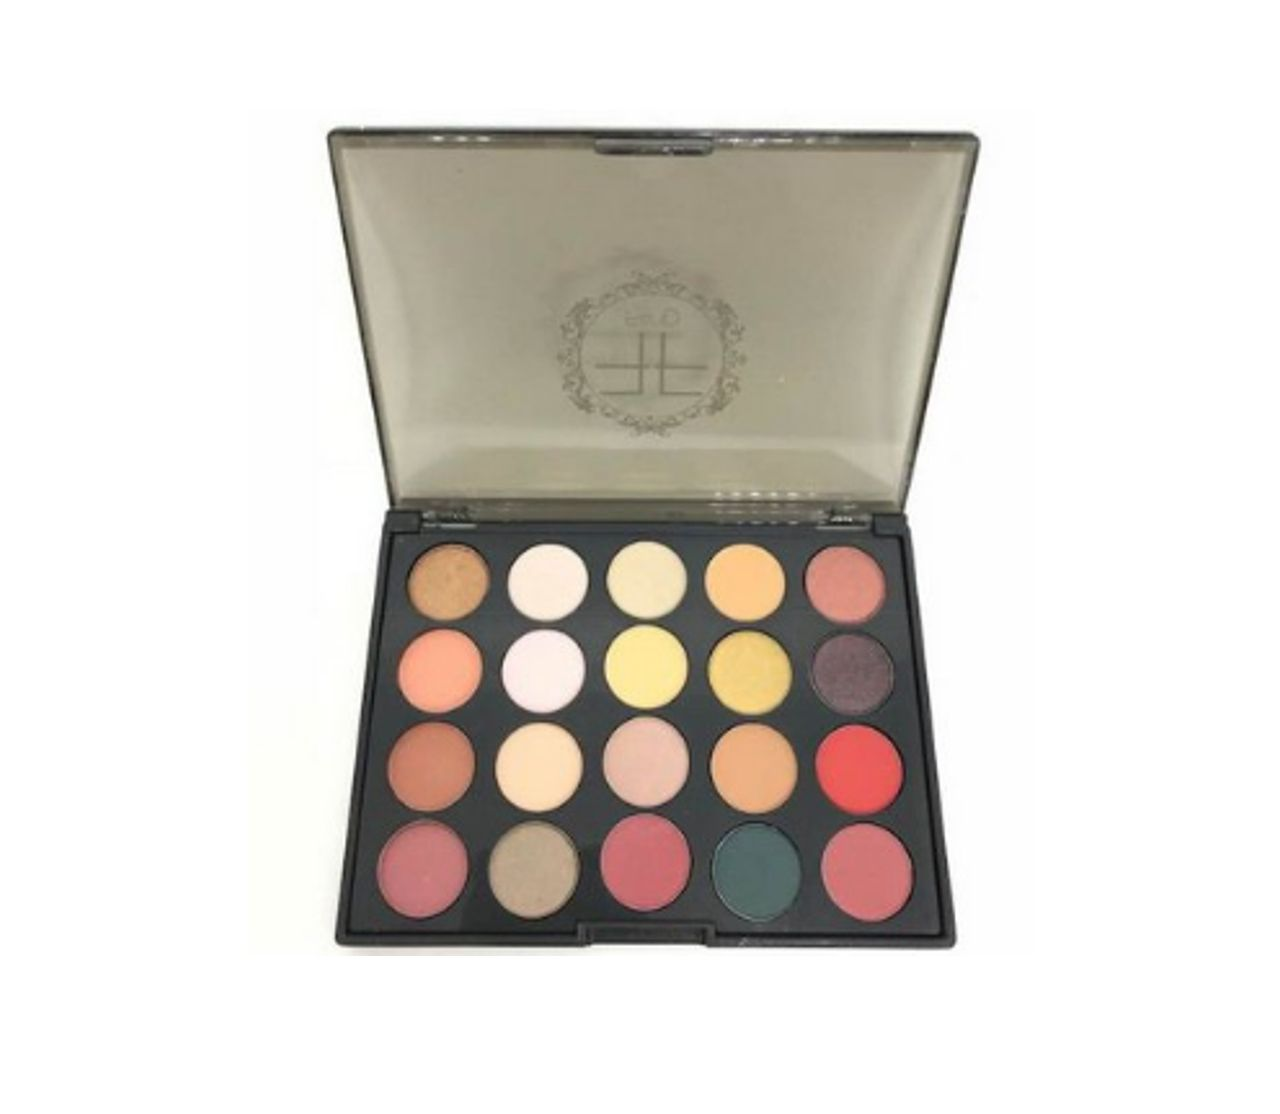 Paleta de sombras 01 Fand Make up